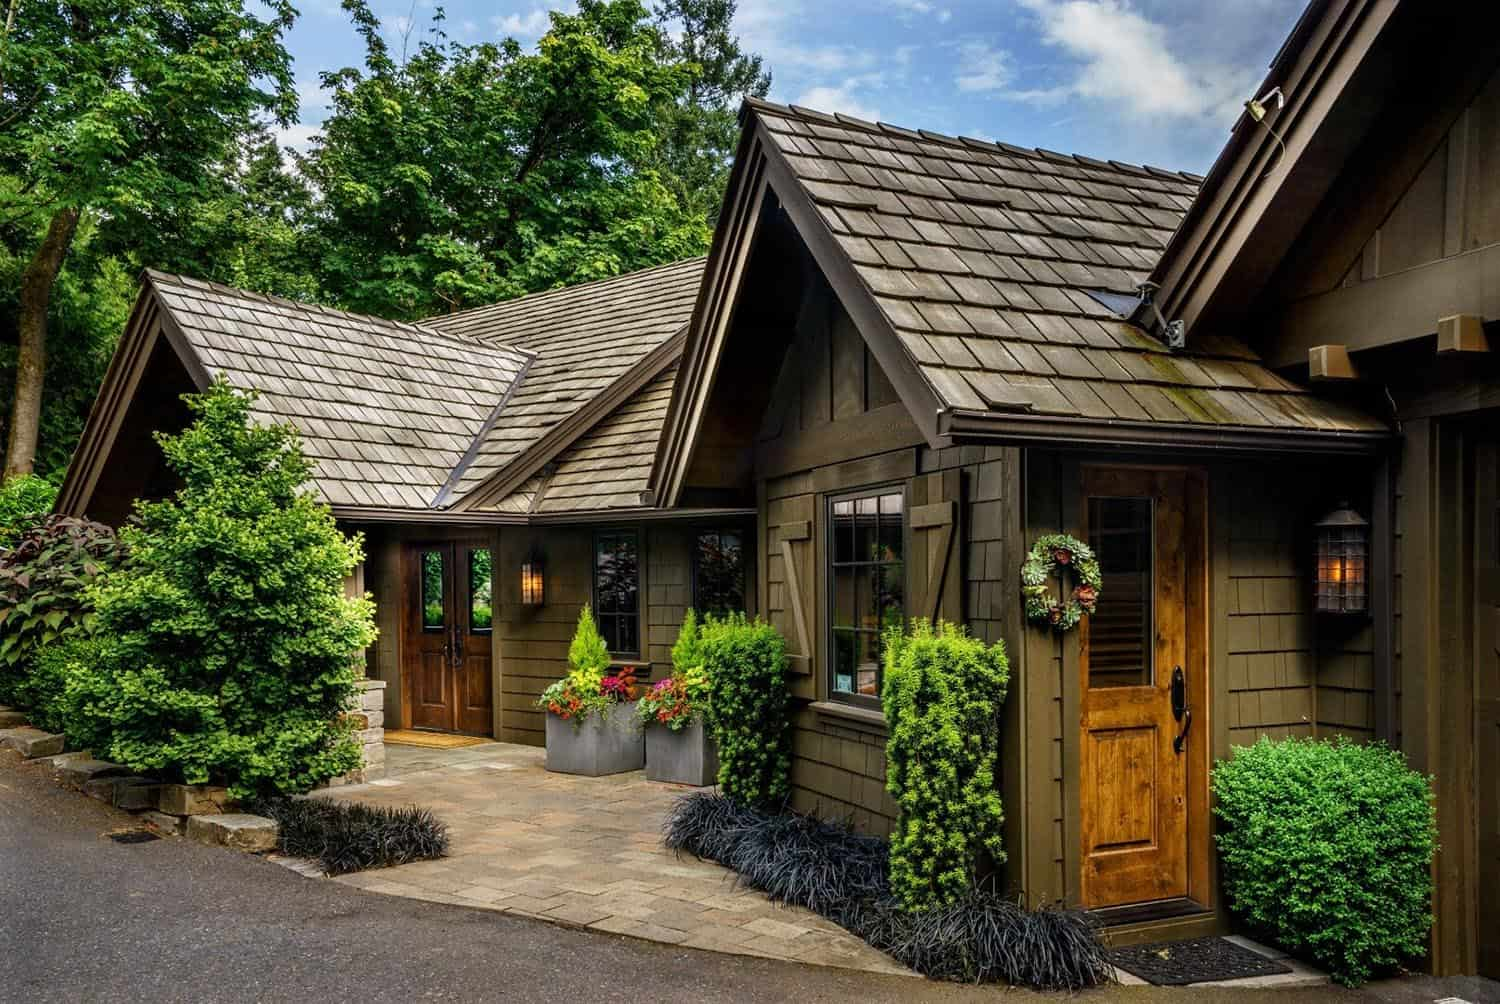 Contemporary craftsman home gets beautifully inspiring makeover in Portland